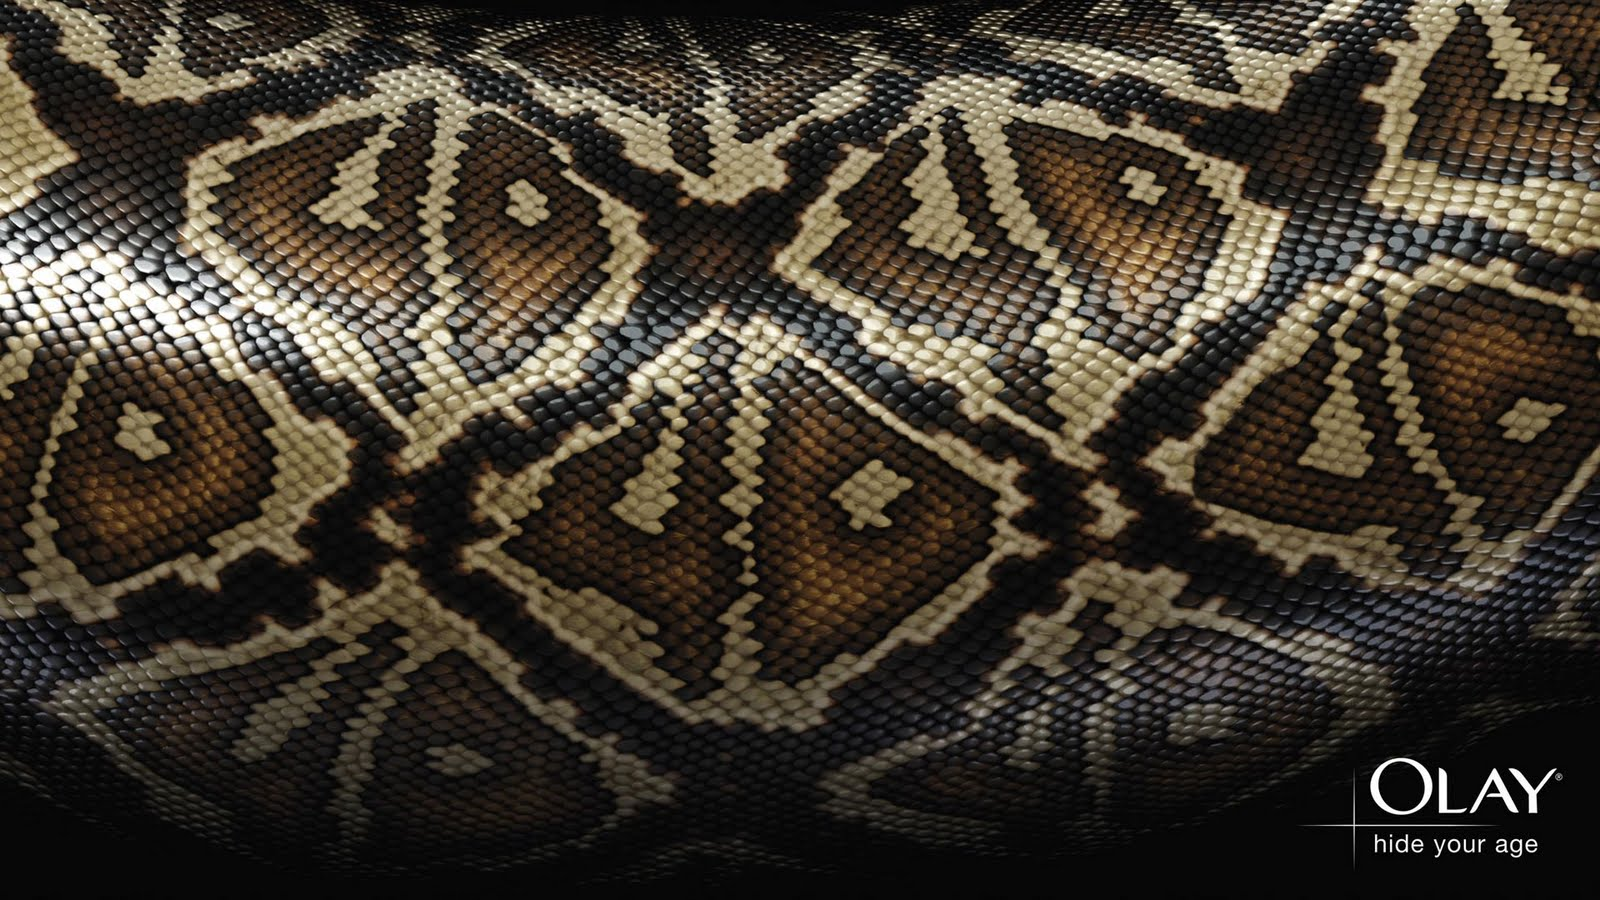 Snake Skin Wallpapers, Snake Skin Patterns Backgrounds, Snake Skin Textures